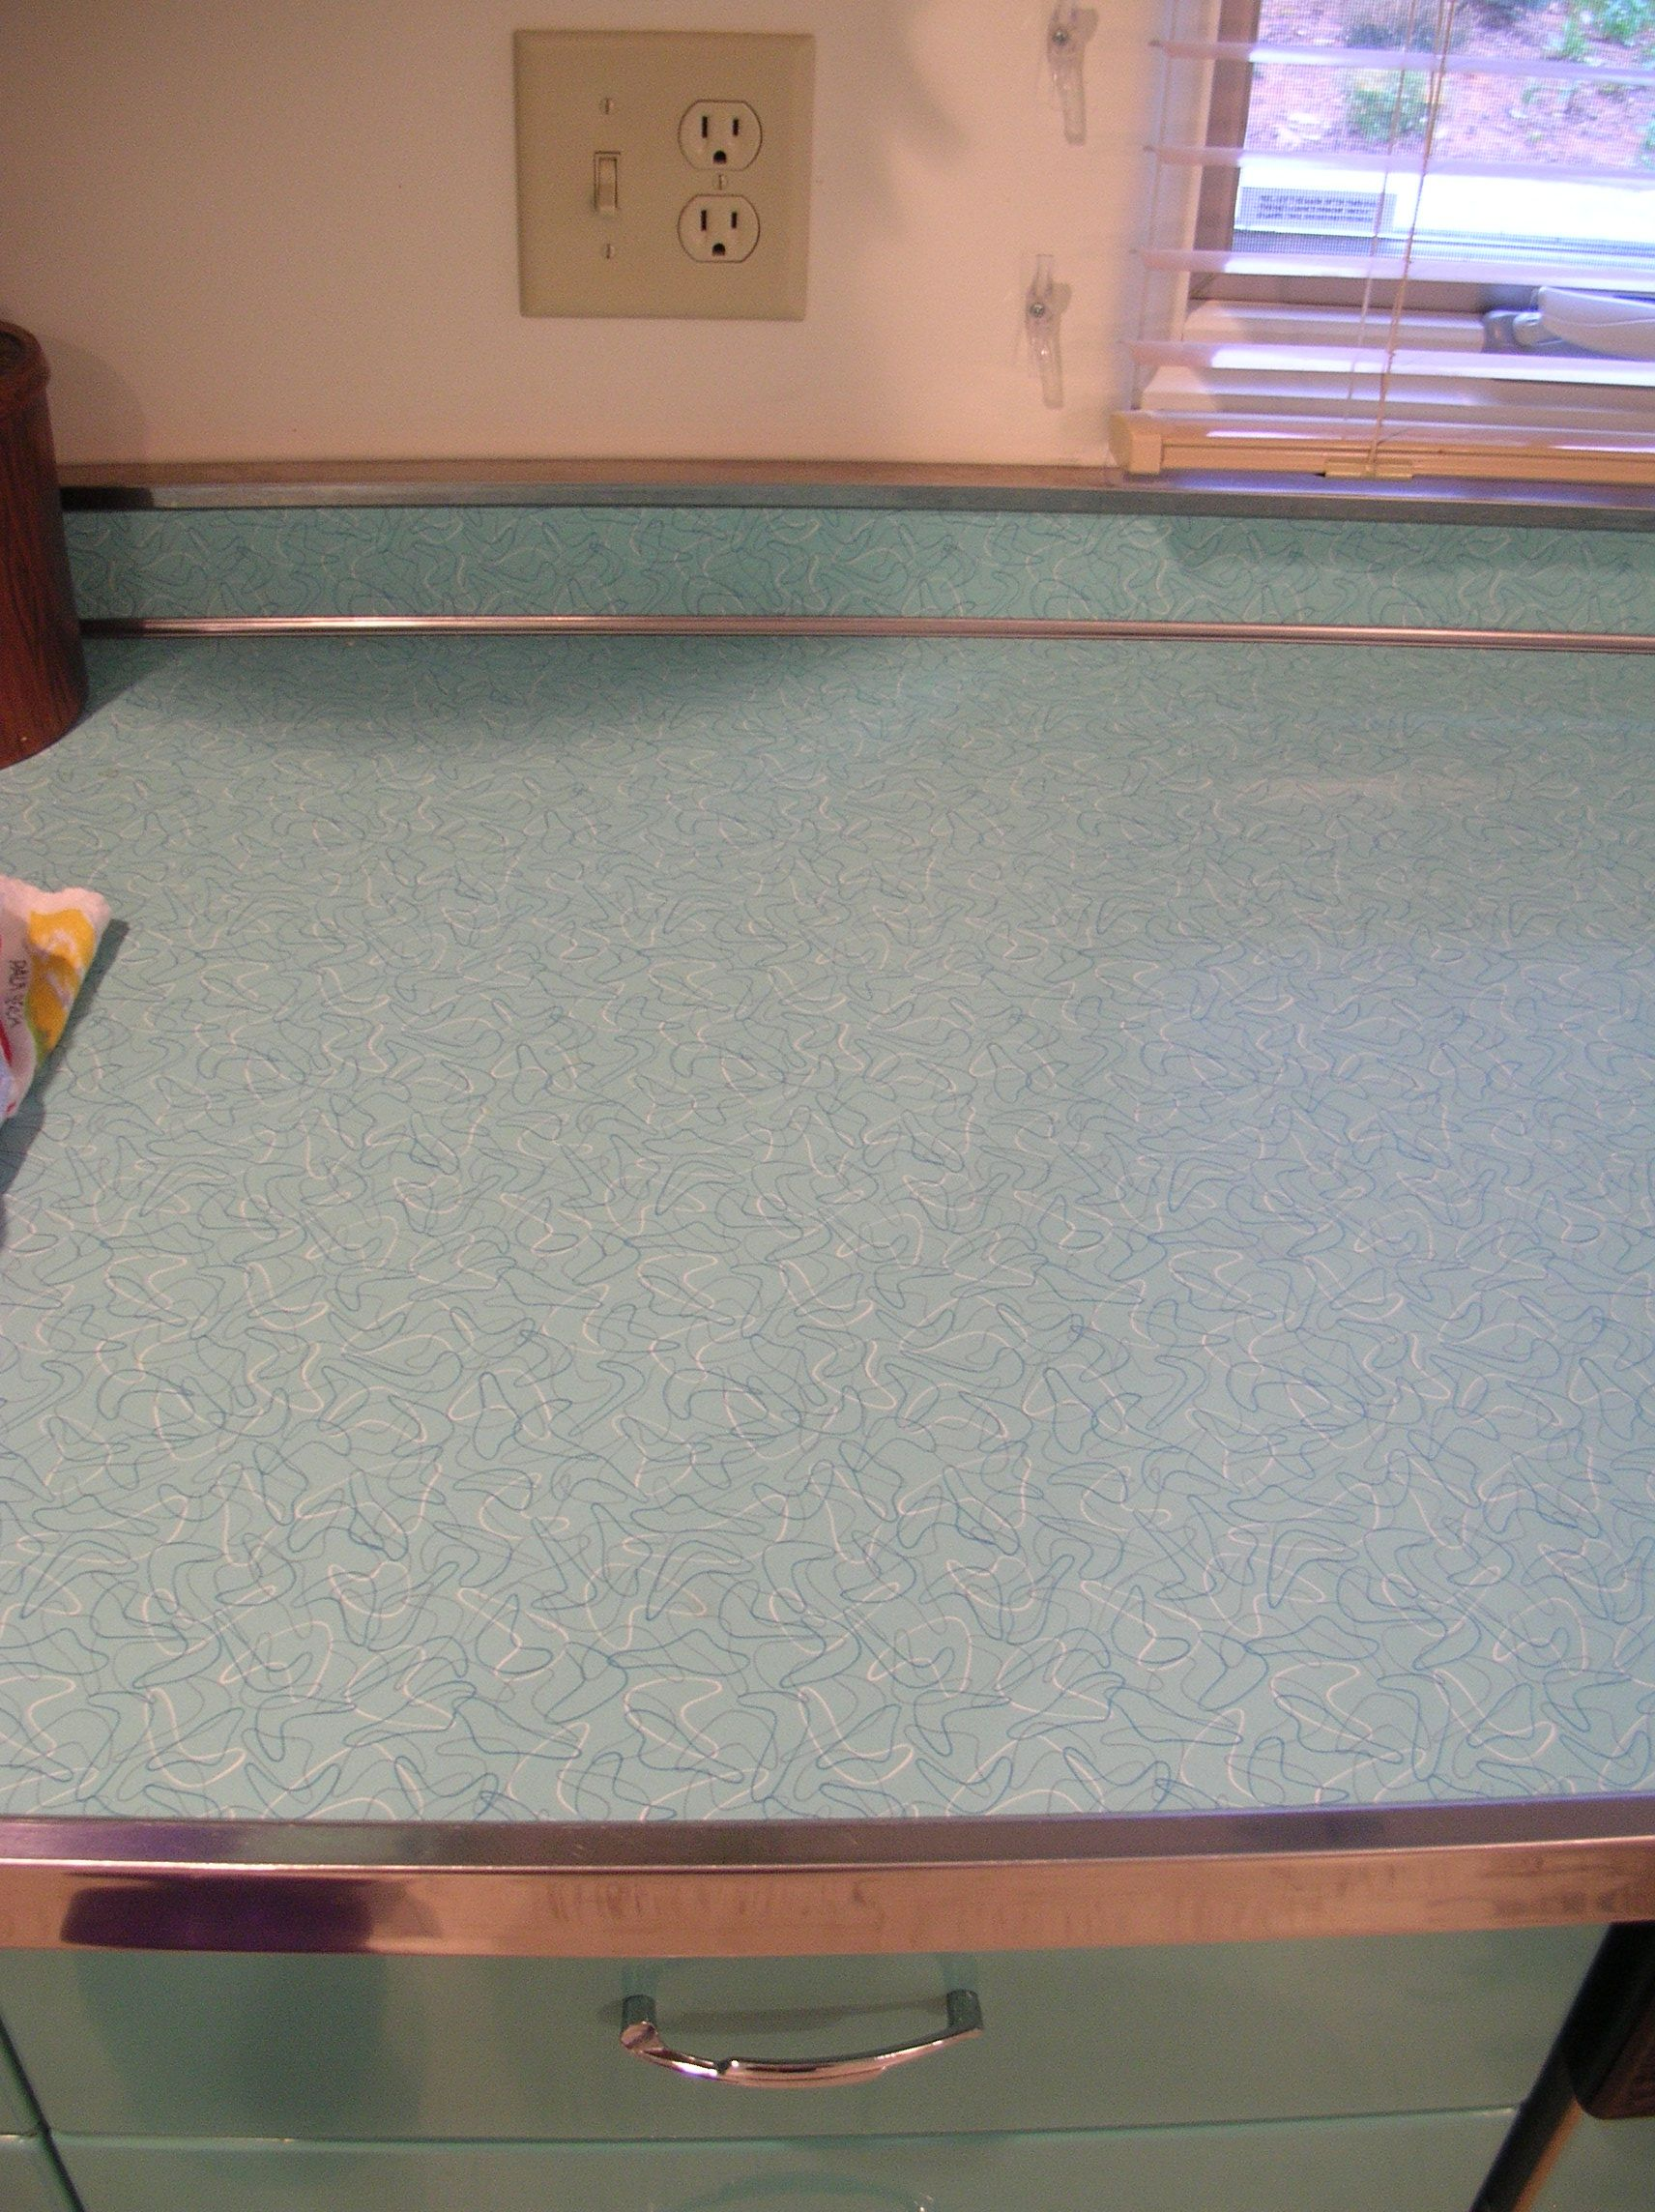 Stainless Steel Kitchen Counter Edging From New York Metals (http://www.